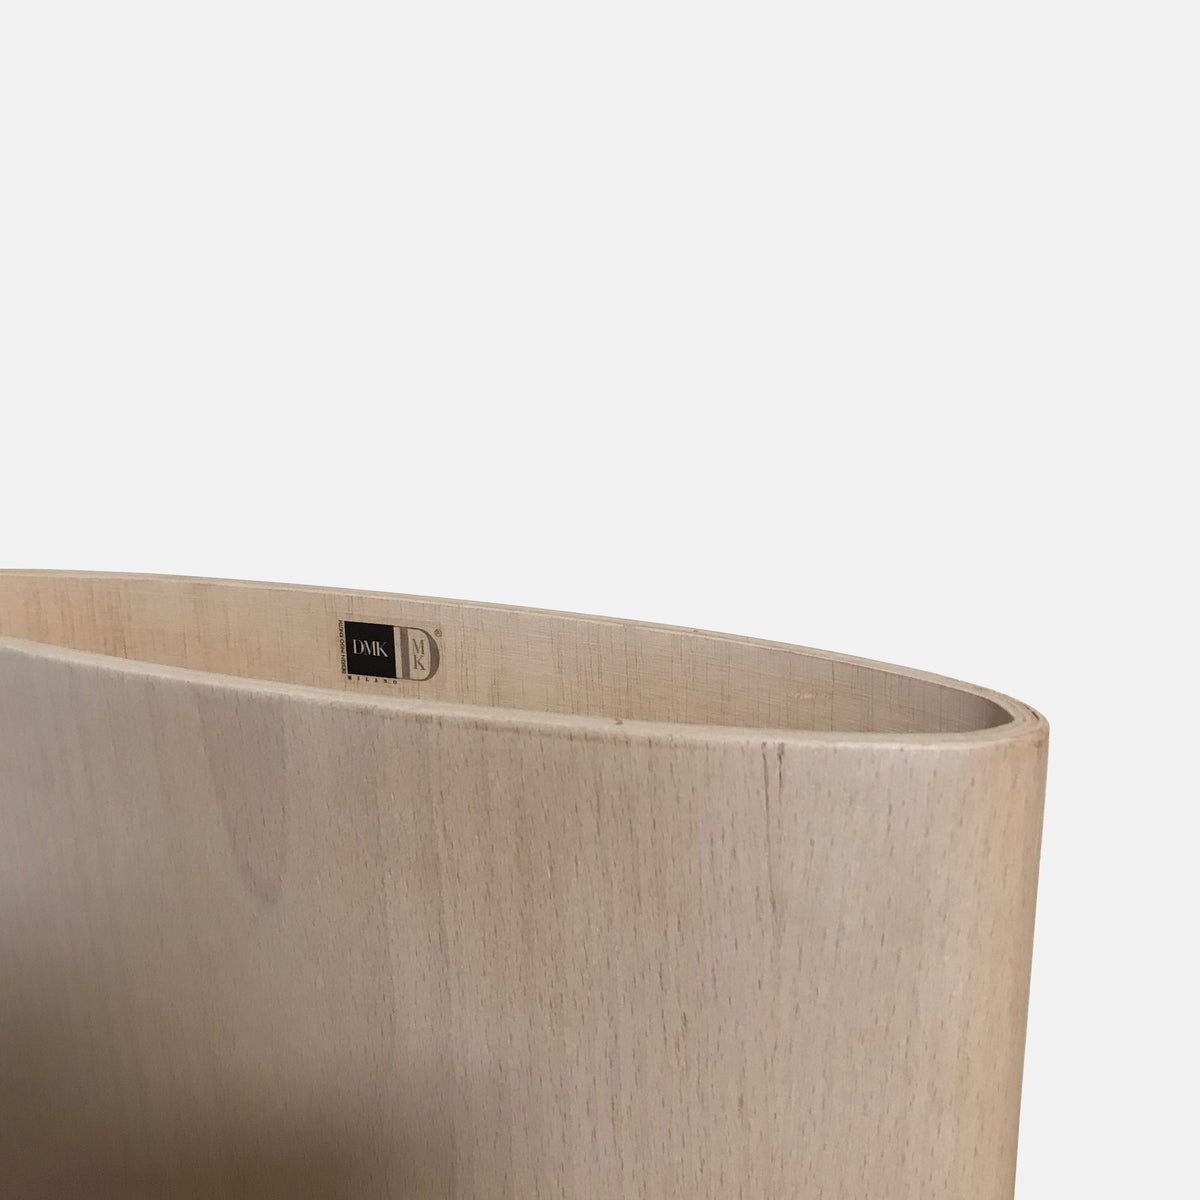 DMK Bent Wood Vase by Ingo Knuth